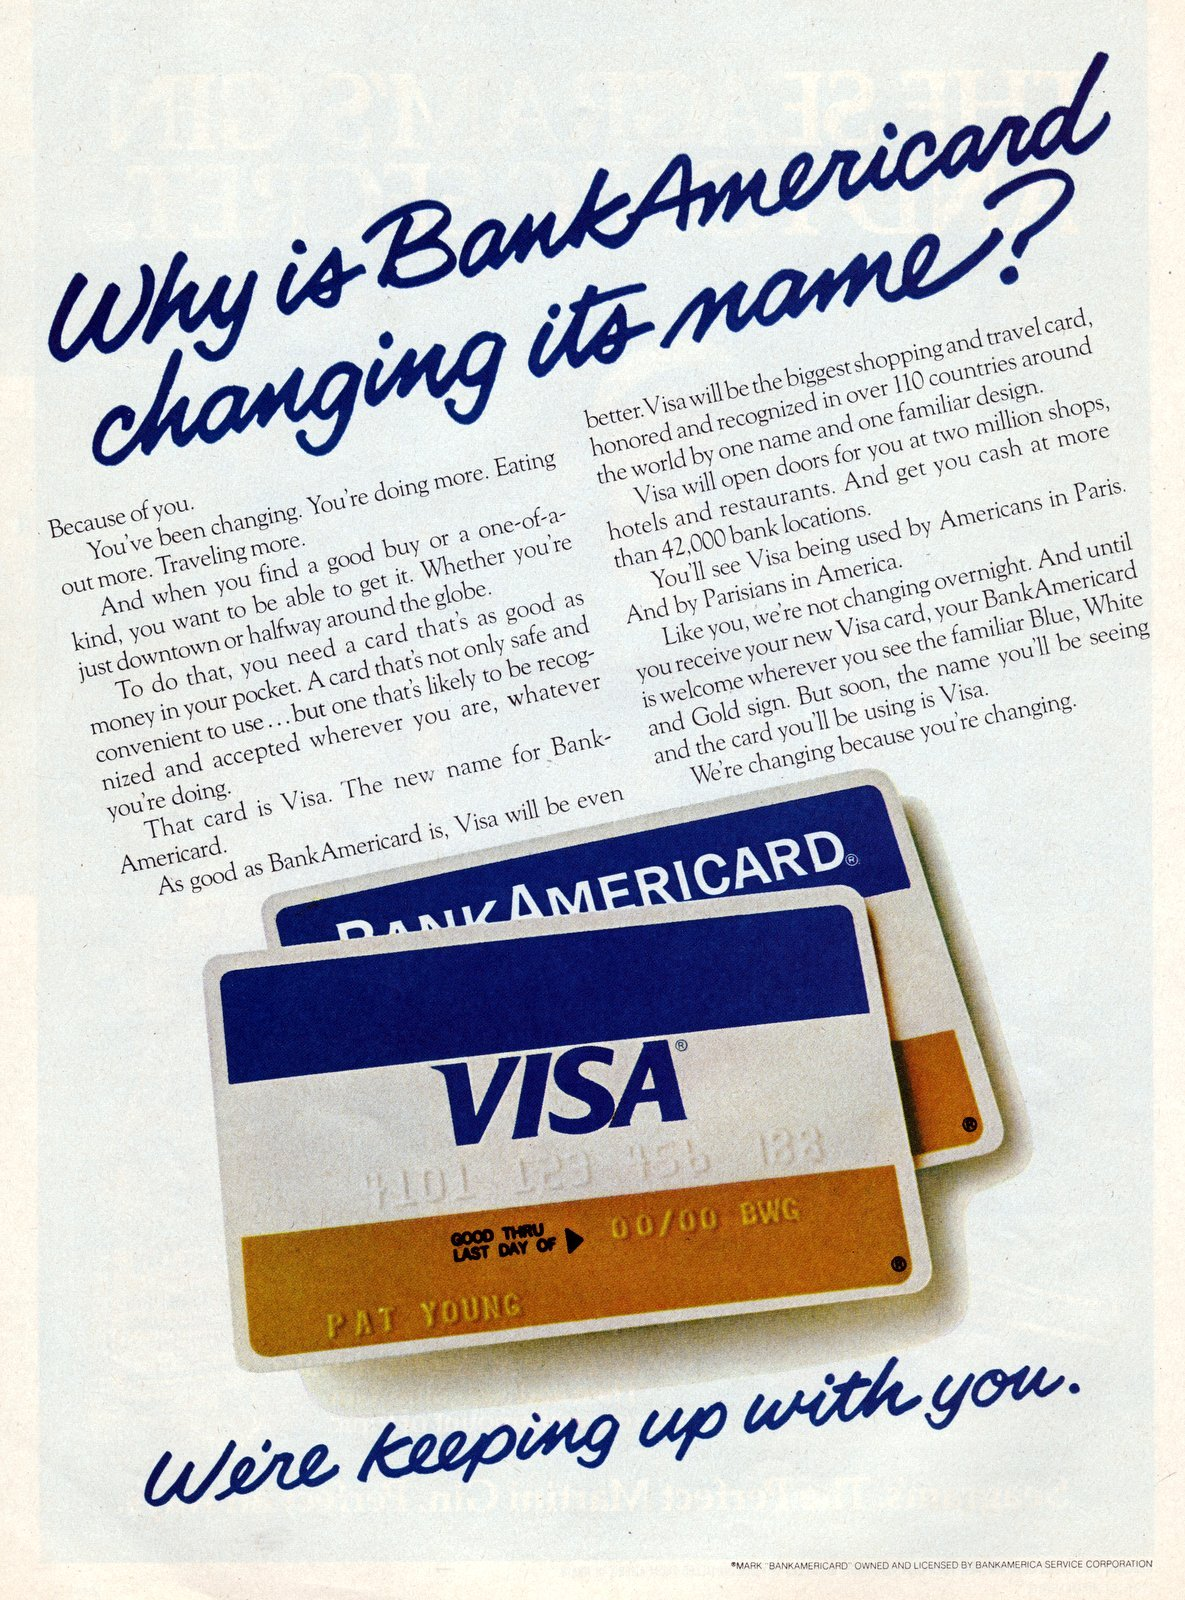 When the Visa credit card first came out (1977)